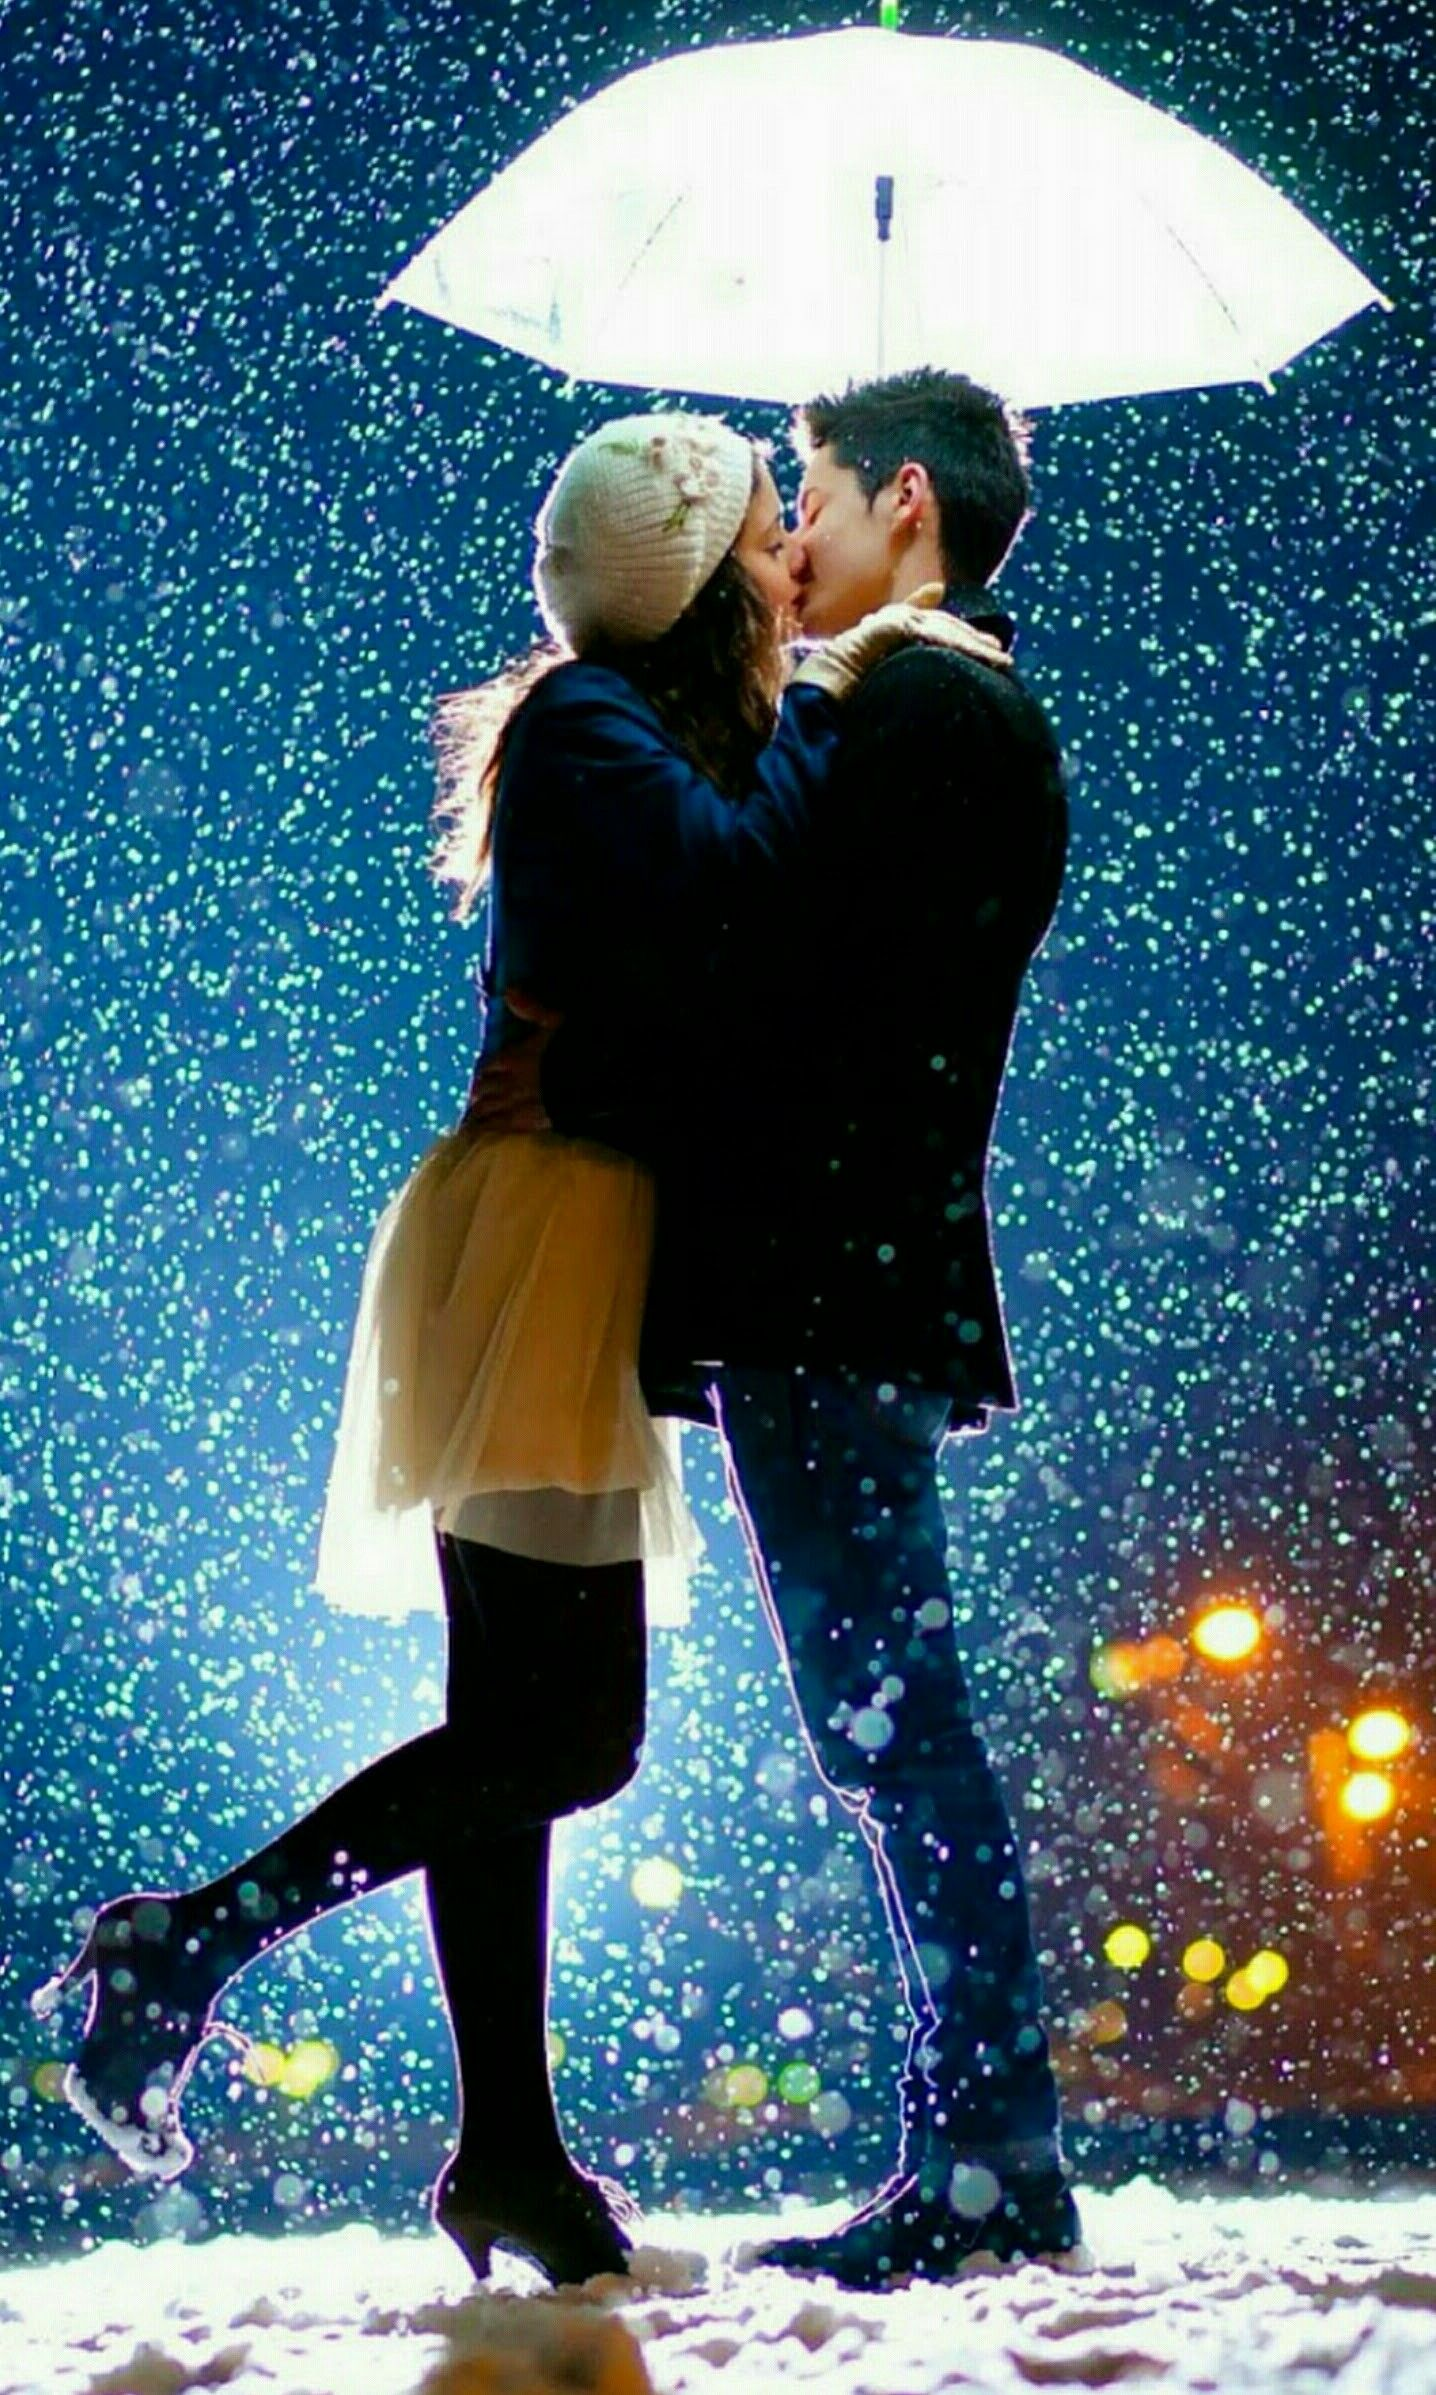 Pin By Zee Thomsen On Dia Dos Namorados Couple In Rain Best Couple Wallpaper Kissing In The Rain Couple love wallpaper hd for mobile